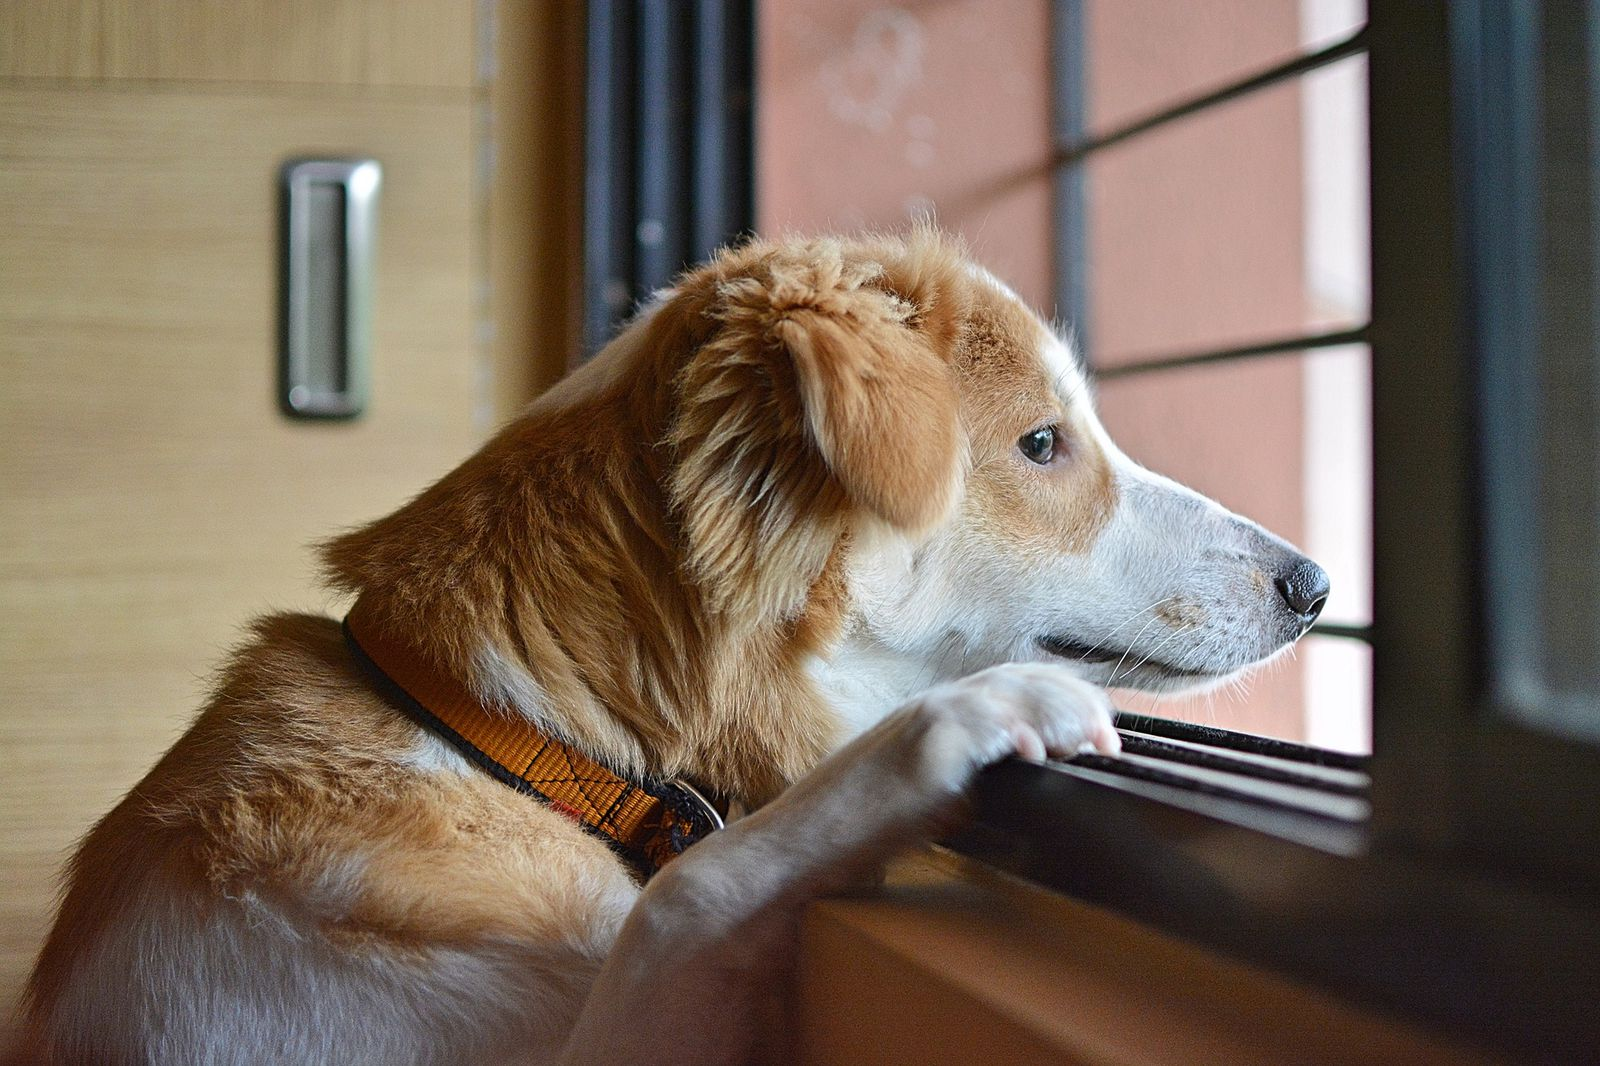 Three-Quarters of Dogs Show Anxiety-Related Behaviors, Study Finds